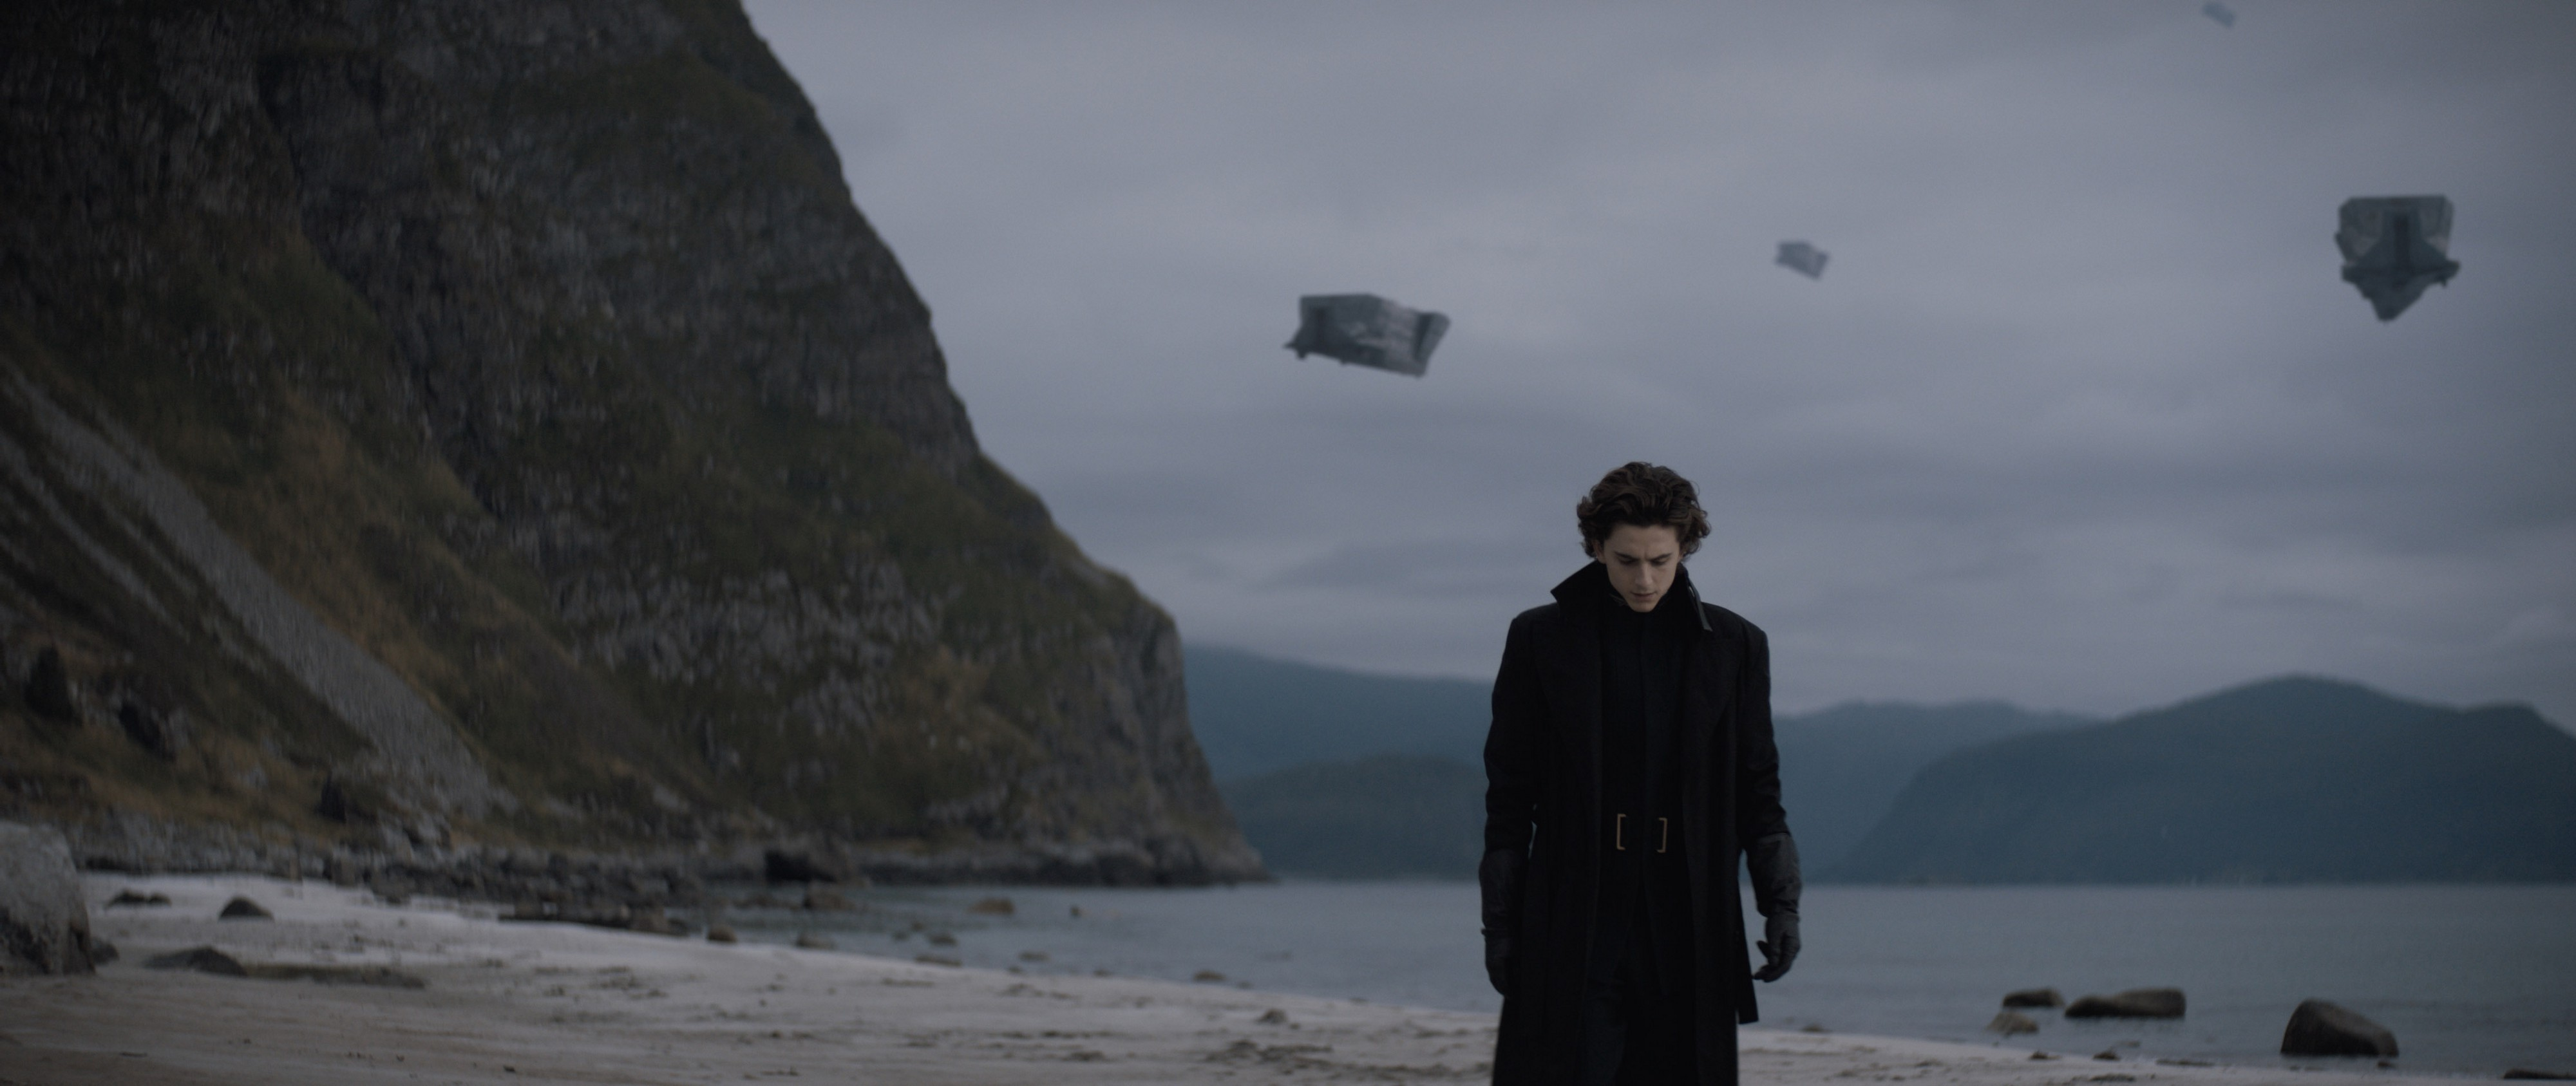 Paul Atreides (Timothée Chalamet) walking in the desert with two aircraft in the cloudy sky behind him.